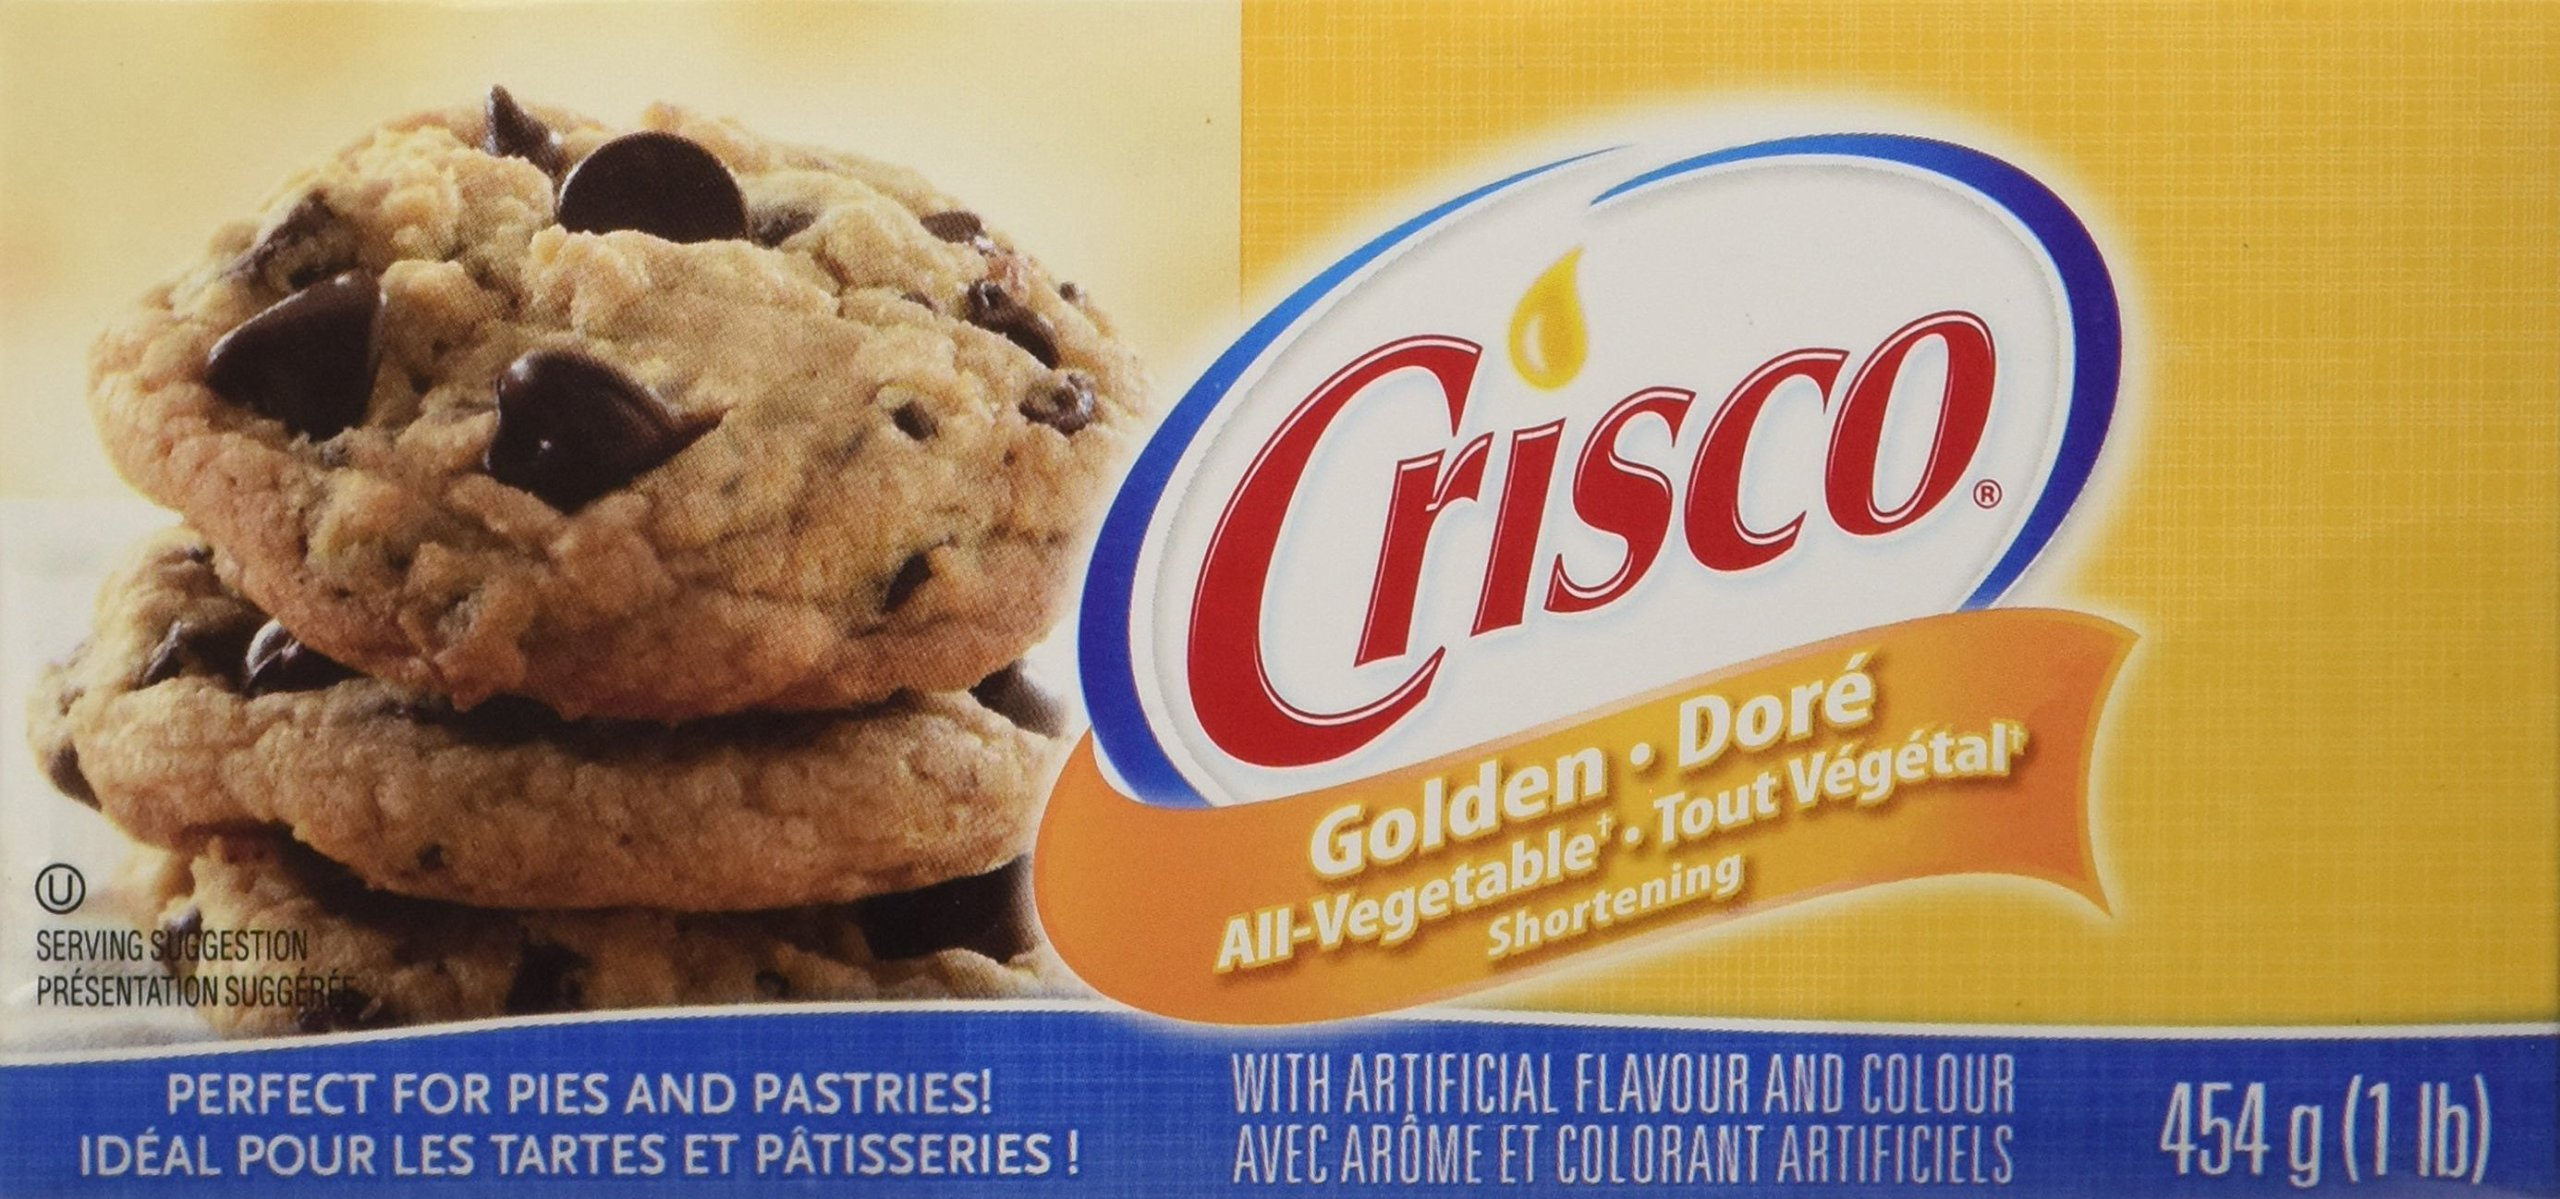 Crisco Golden All-Vegetable Shortening 454 Grams